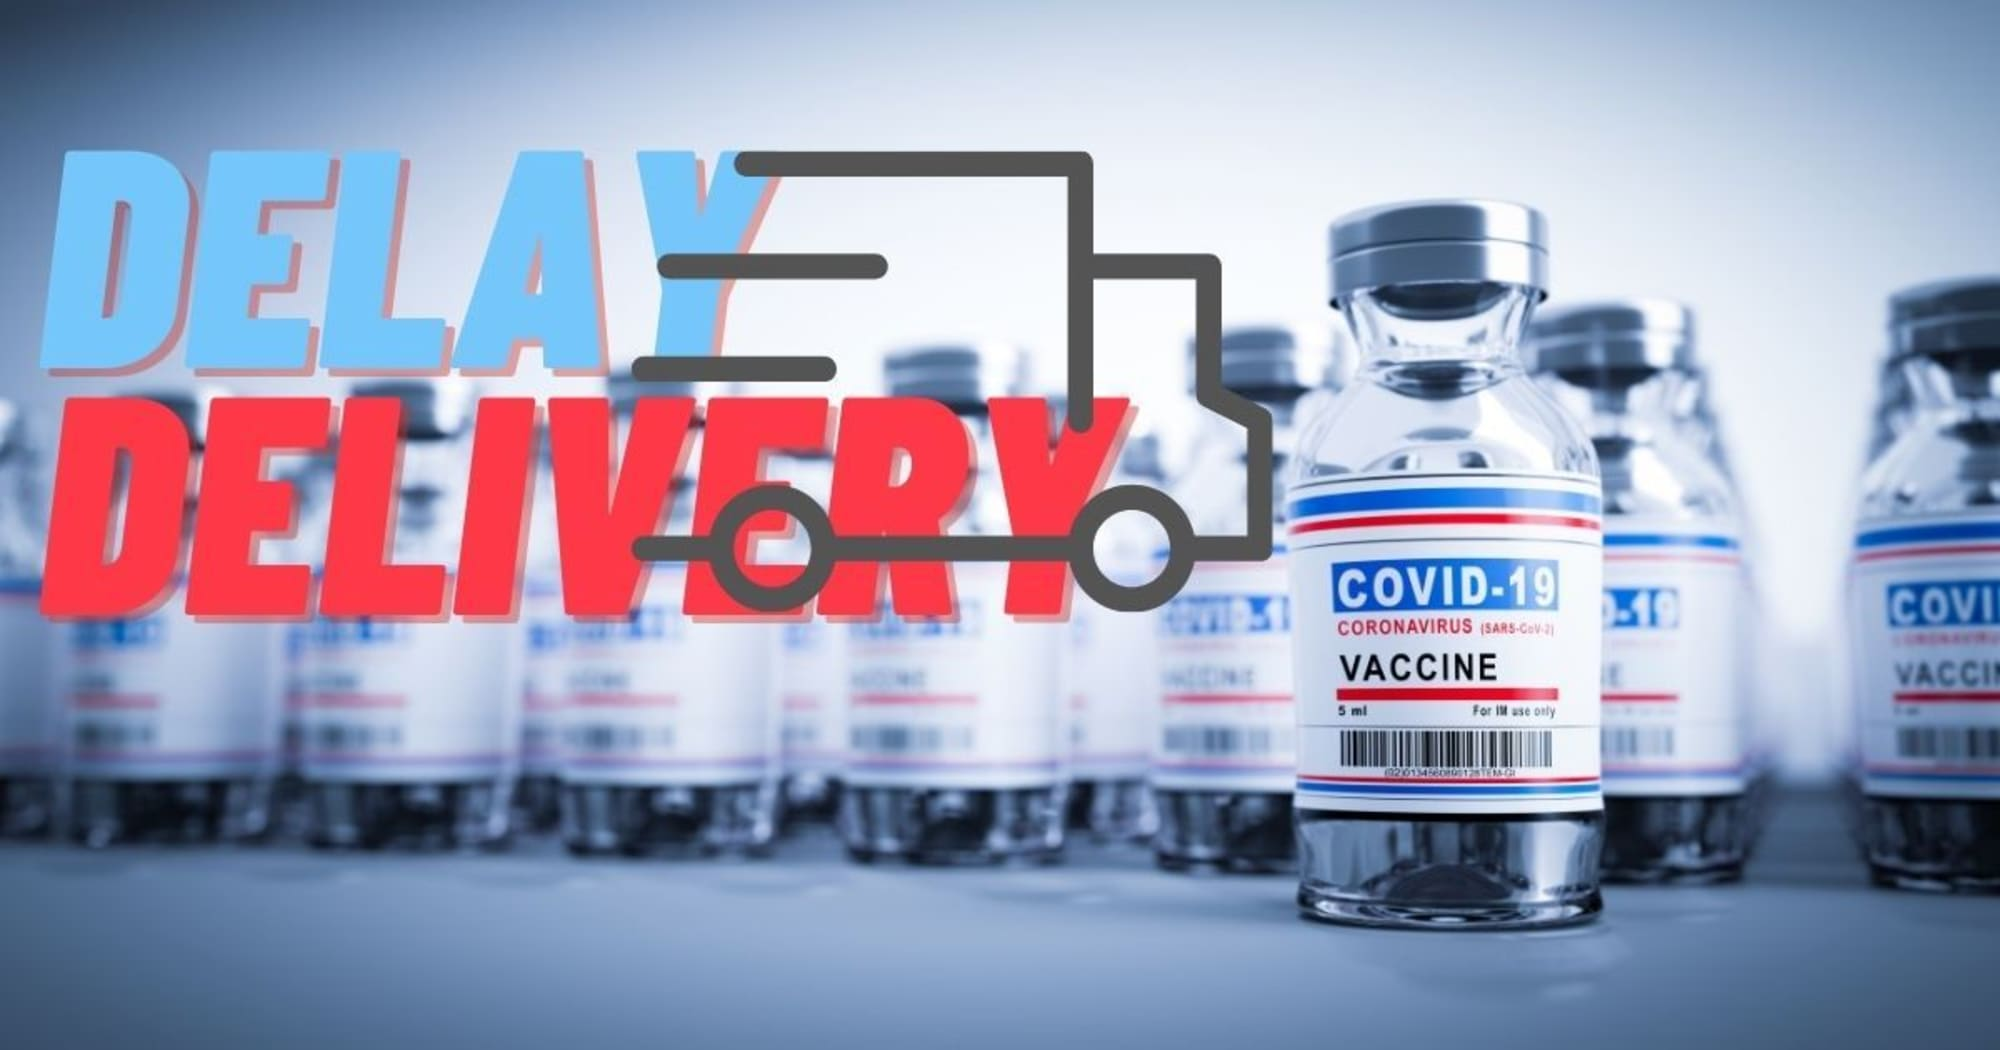 Delay in Vaccine Delivery is Experience Worldwide, says Galvez